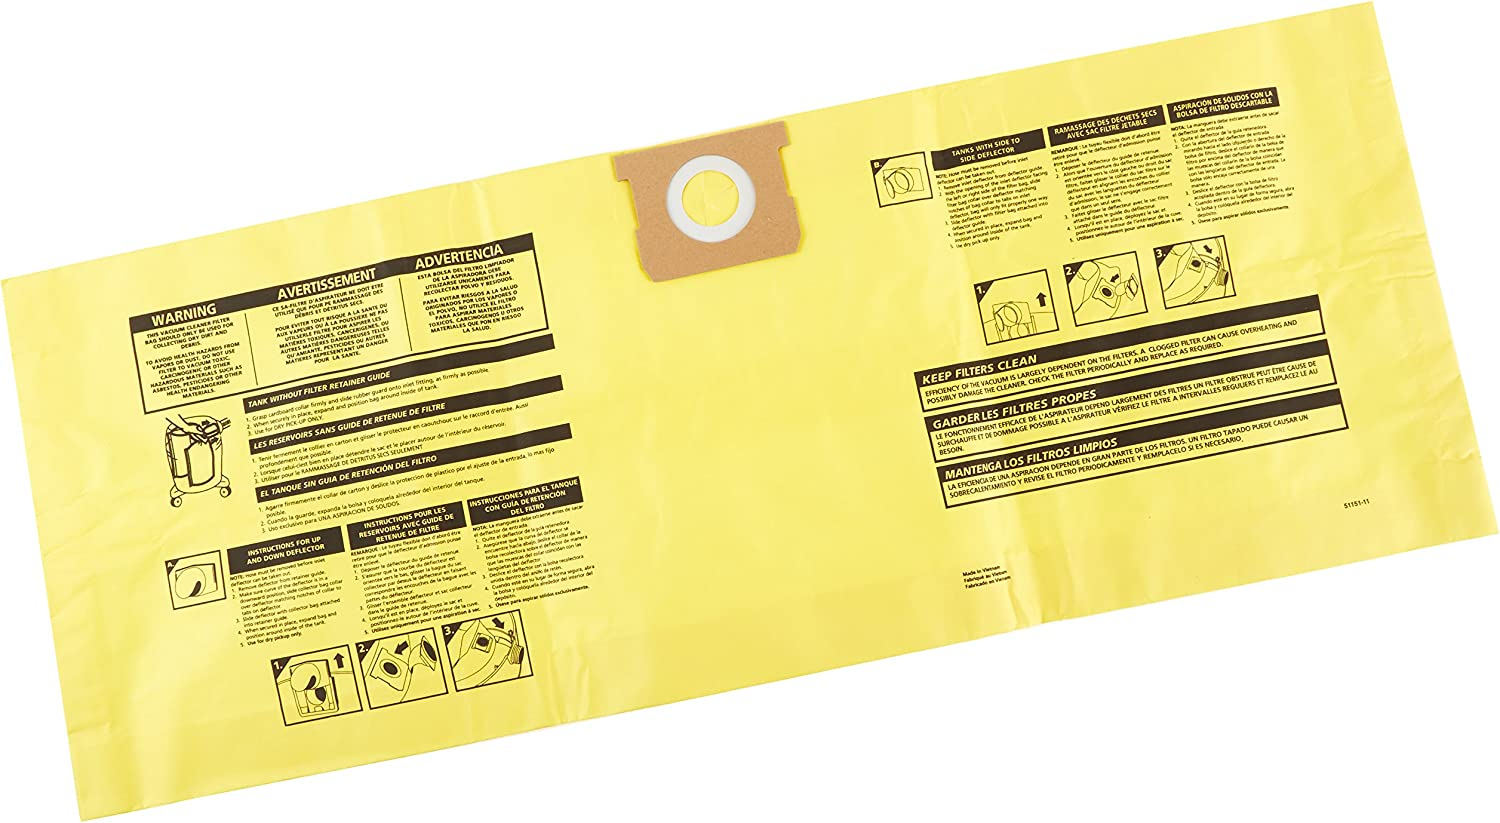 Shop-Vac 9190610 Genuine Collection Bags, 10 to 14 gallon, Yellow